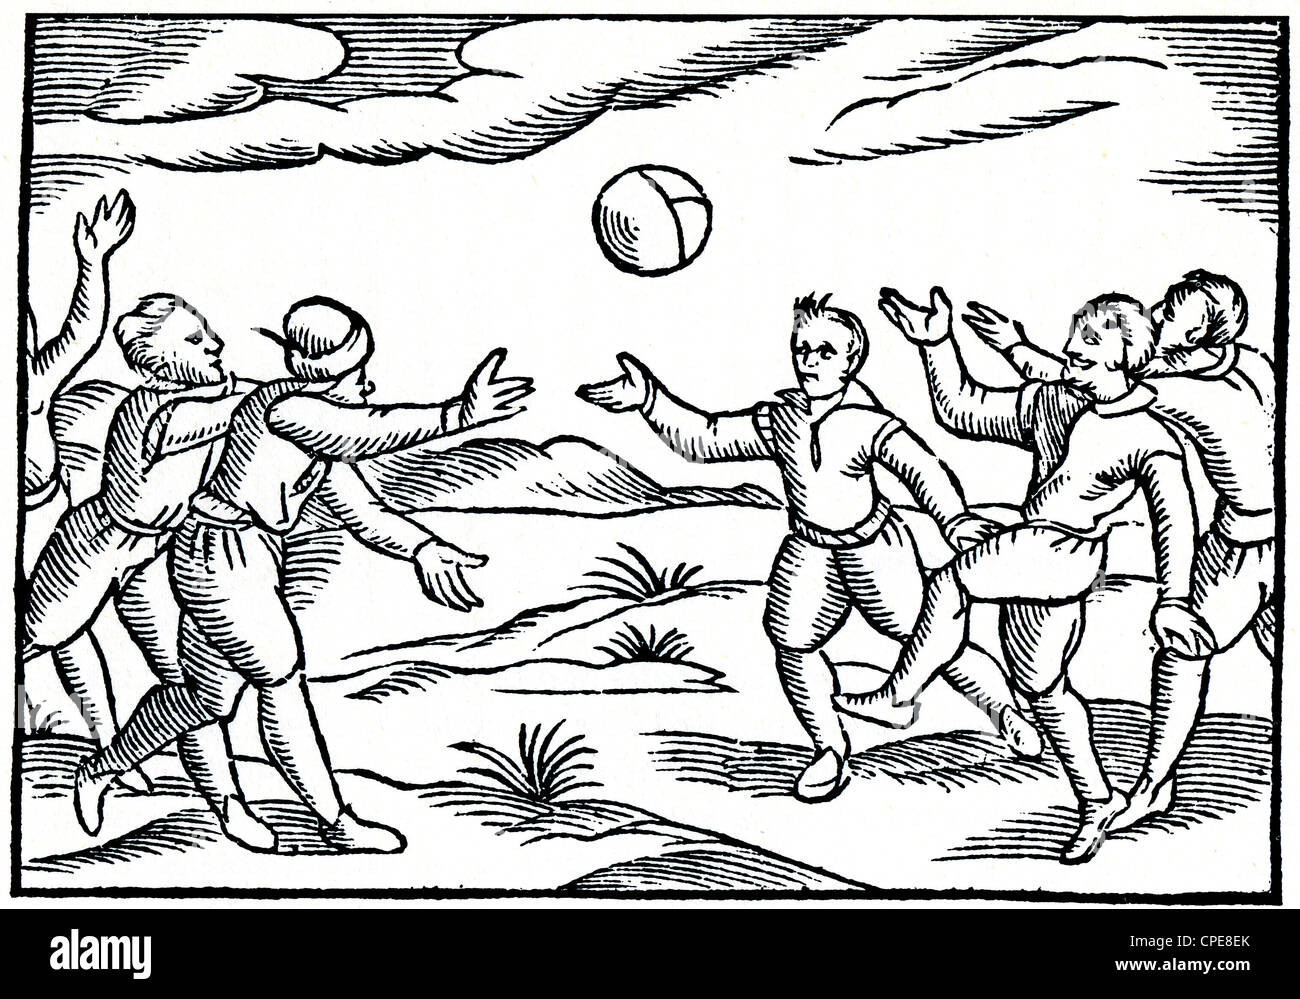 ELIZABETHAN ENGLAND: game with a ball - Stock Image